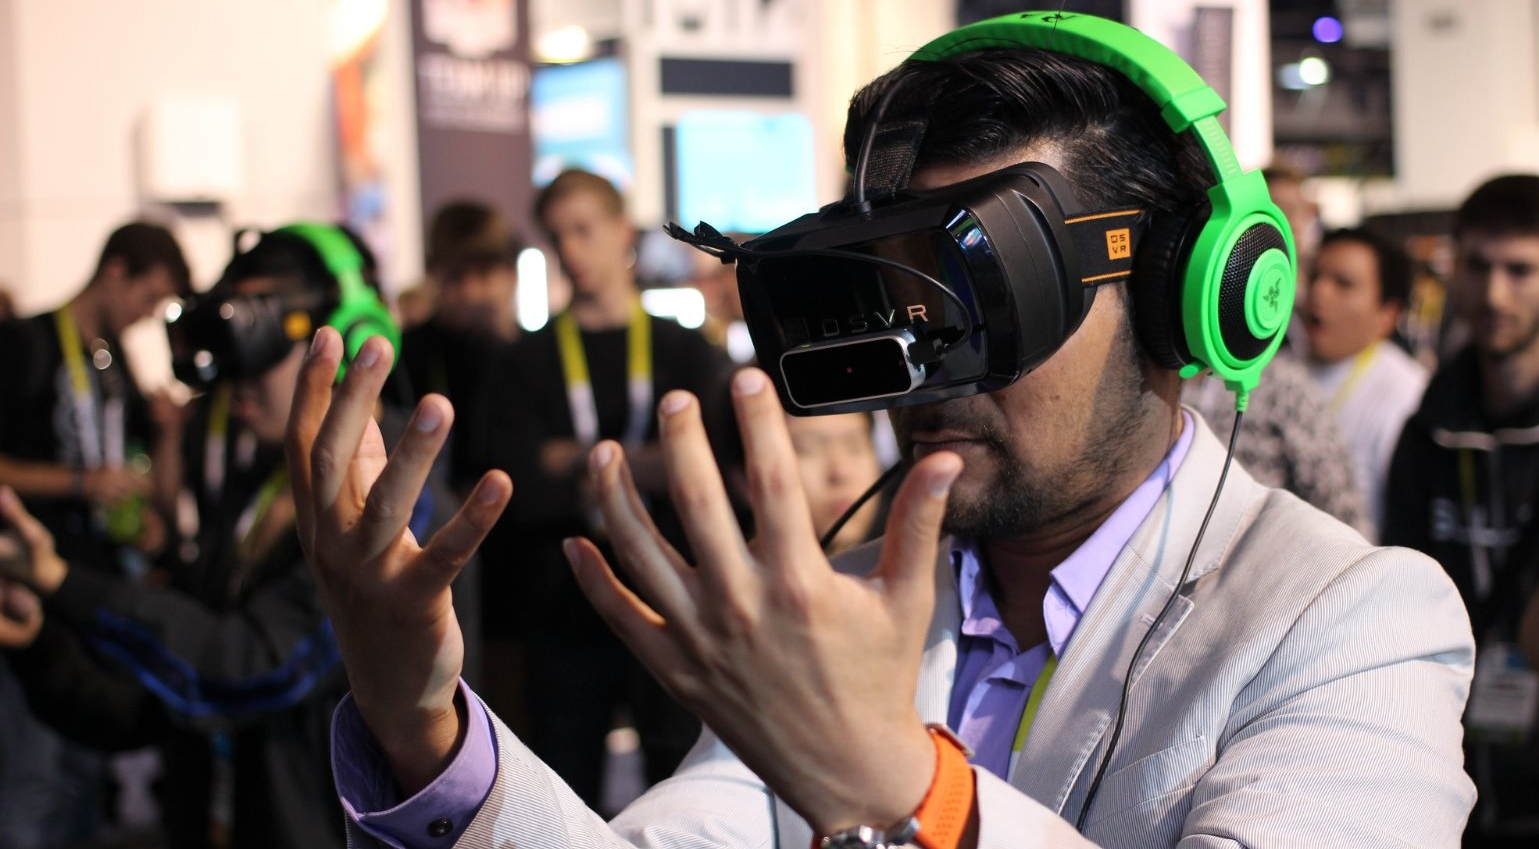 A man tests out a virtual reality headset.